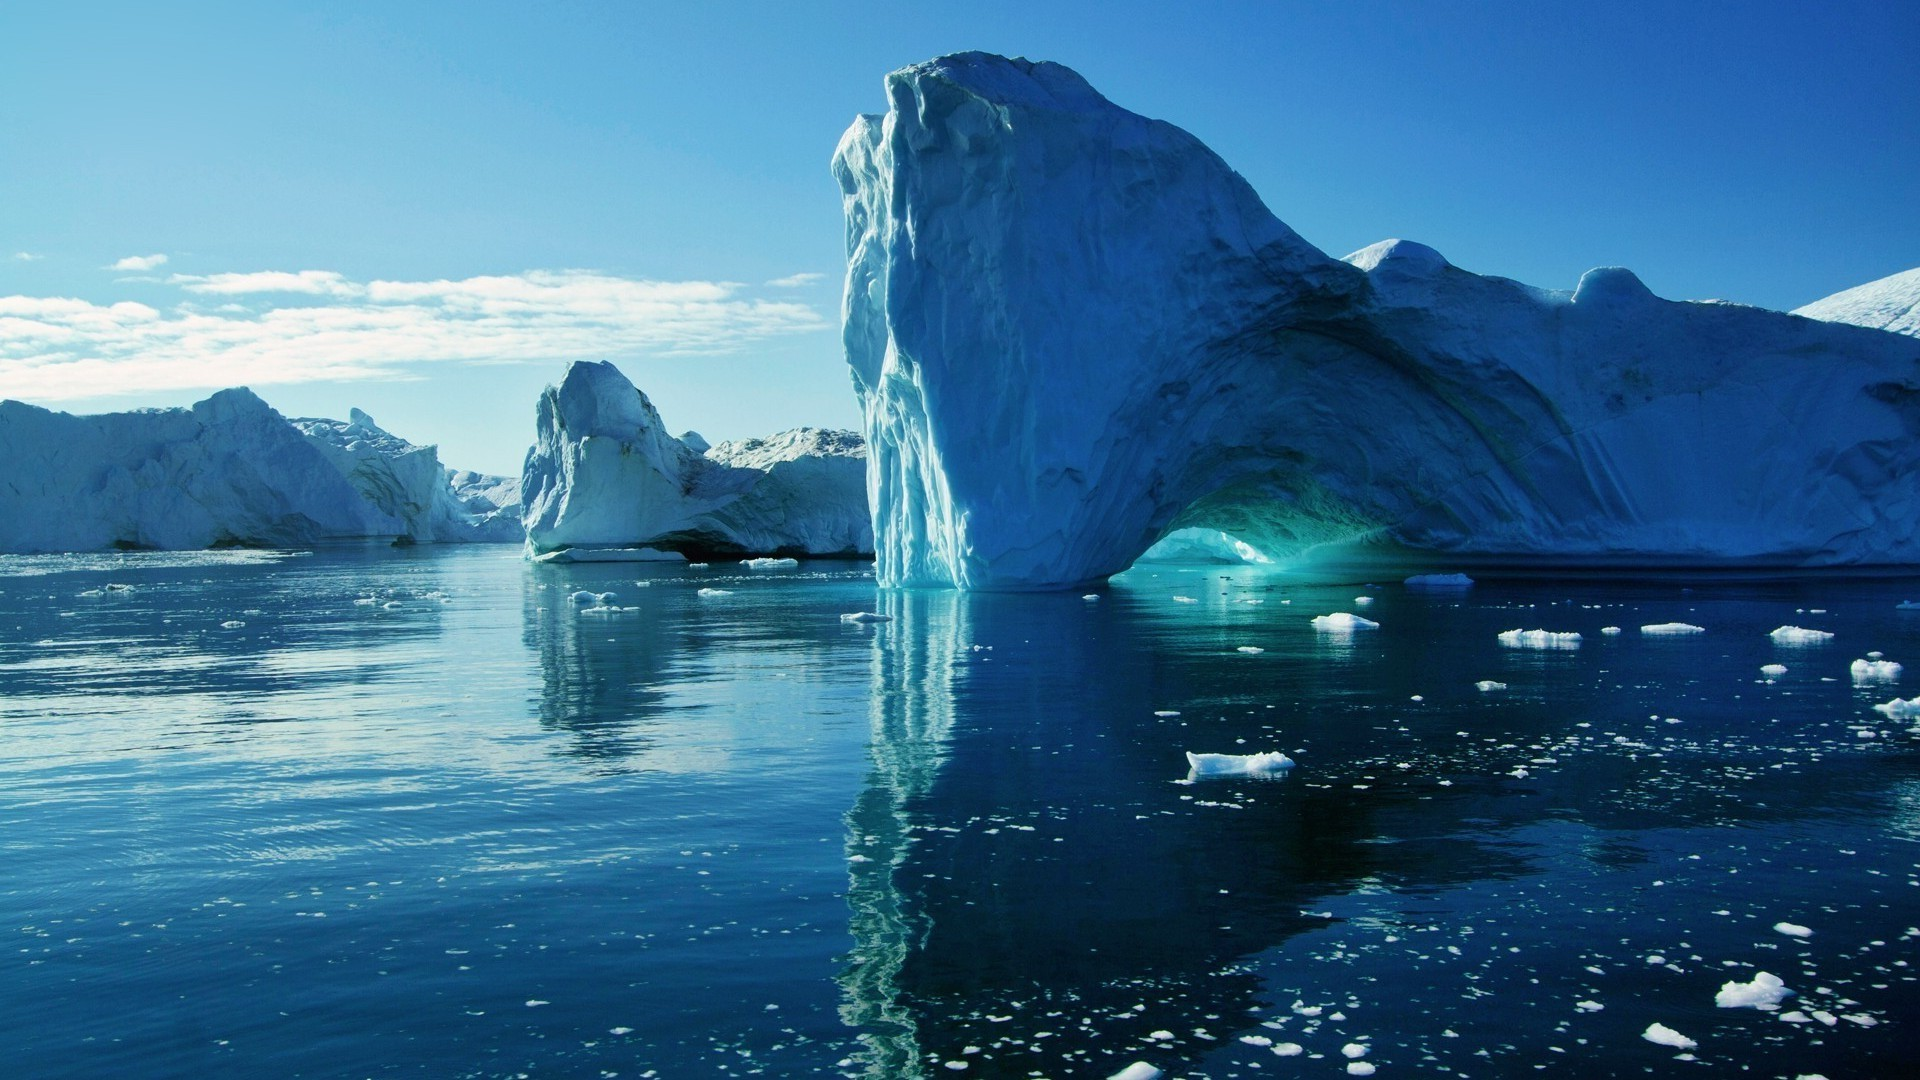 sea and ocean water iceberg sea ice nature snow travel frosty ocean outdoors melting winter sky landscape glacier swimming reflection cold mountain